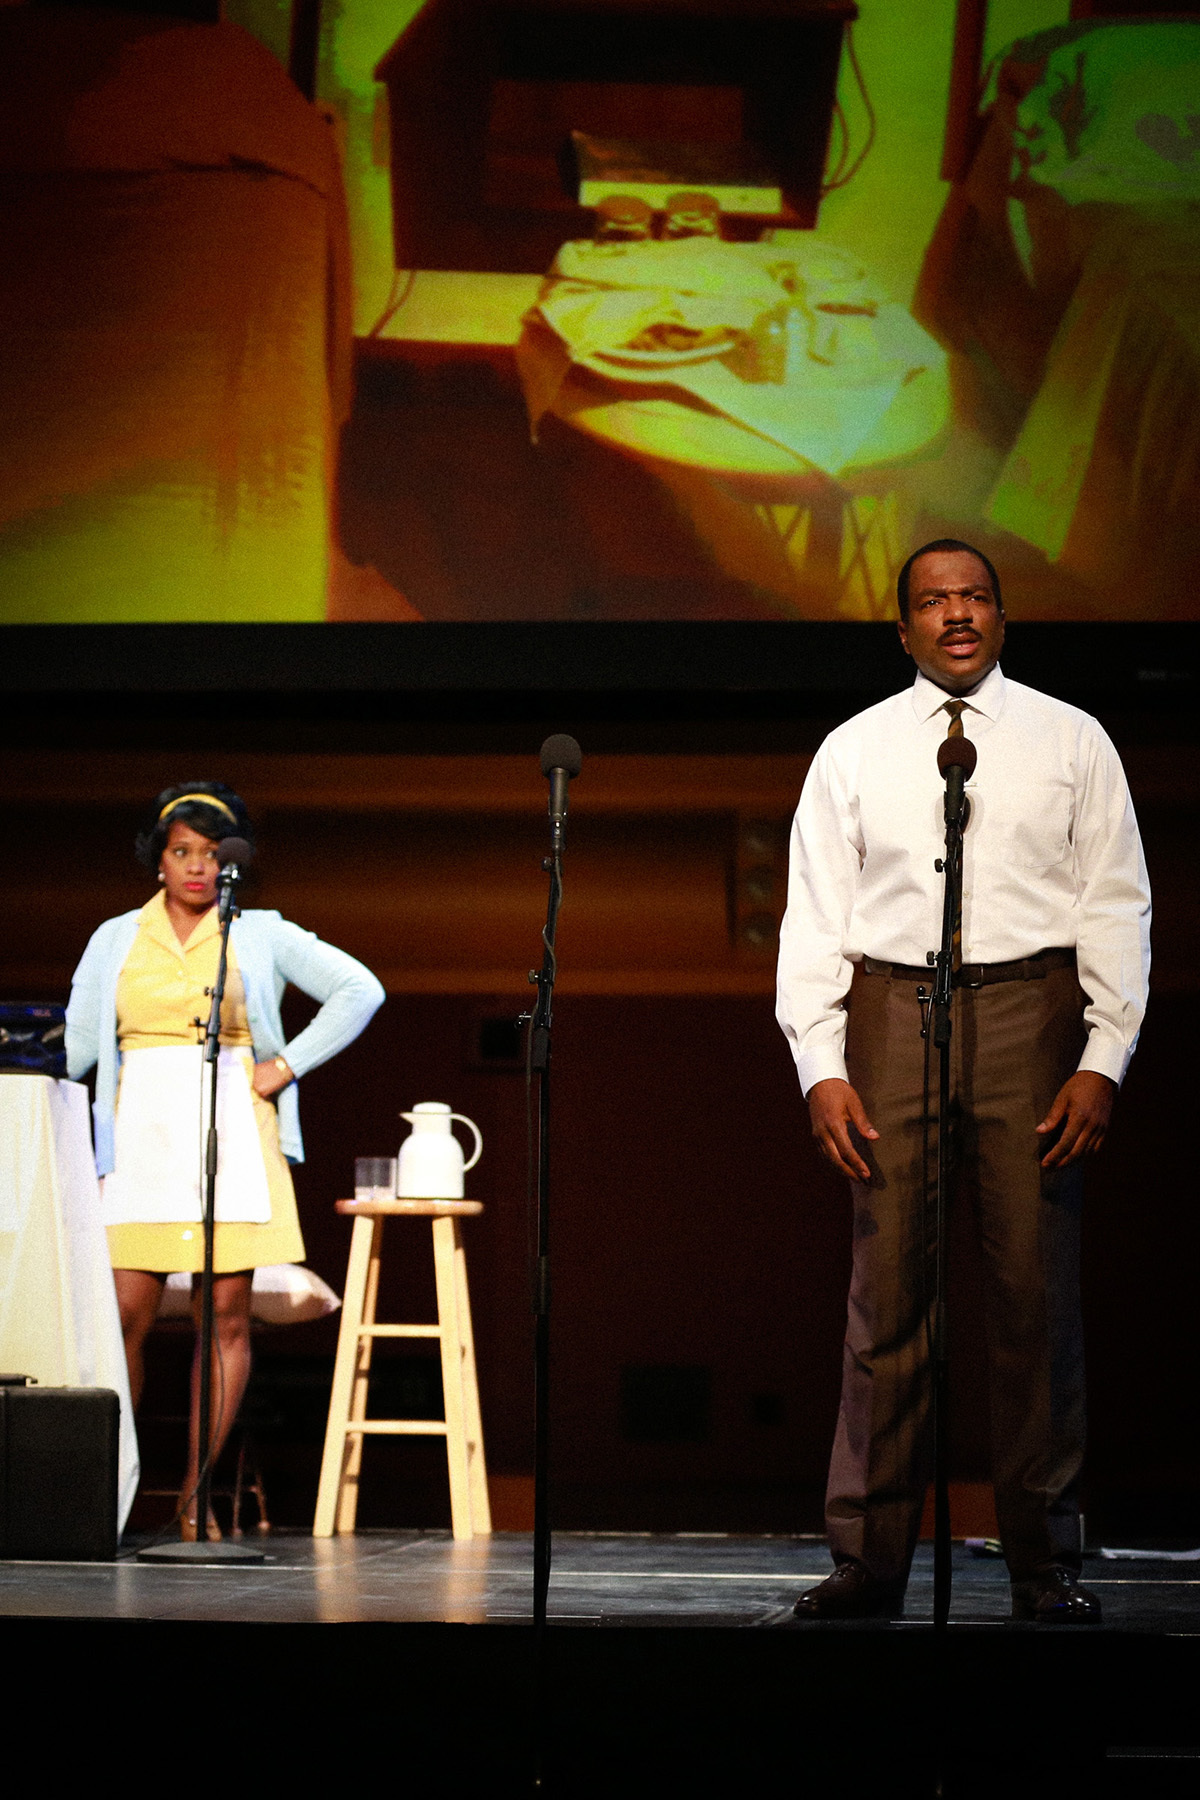 BWW Review: L.A. Theatre Works's THE MOUNTAINTOP Climbs to New Heights at George Mason University